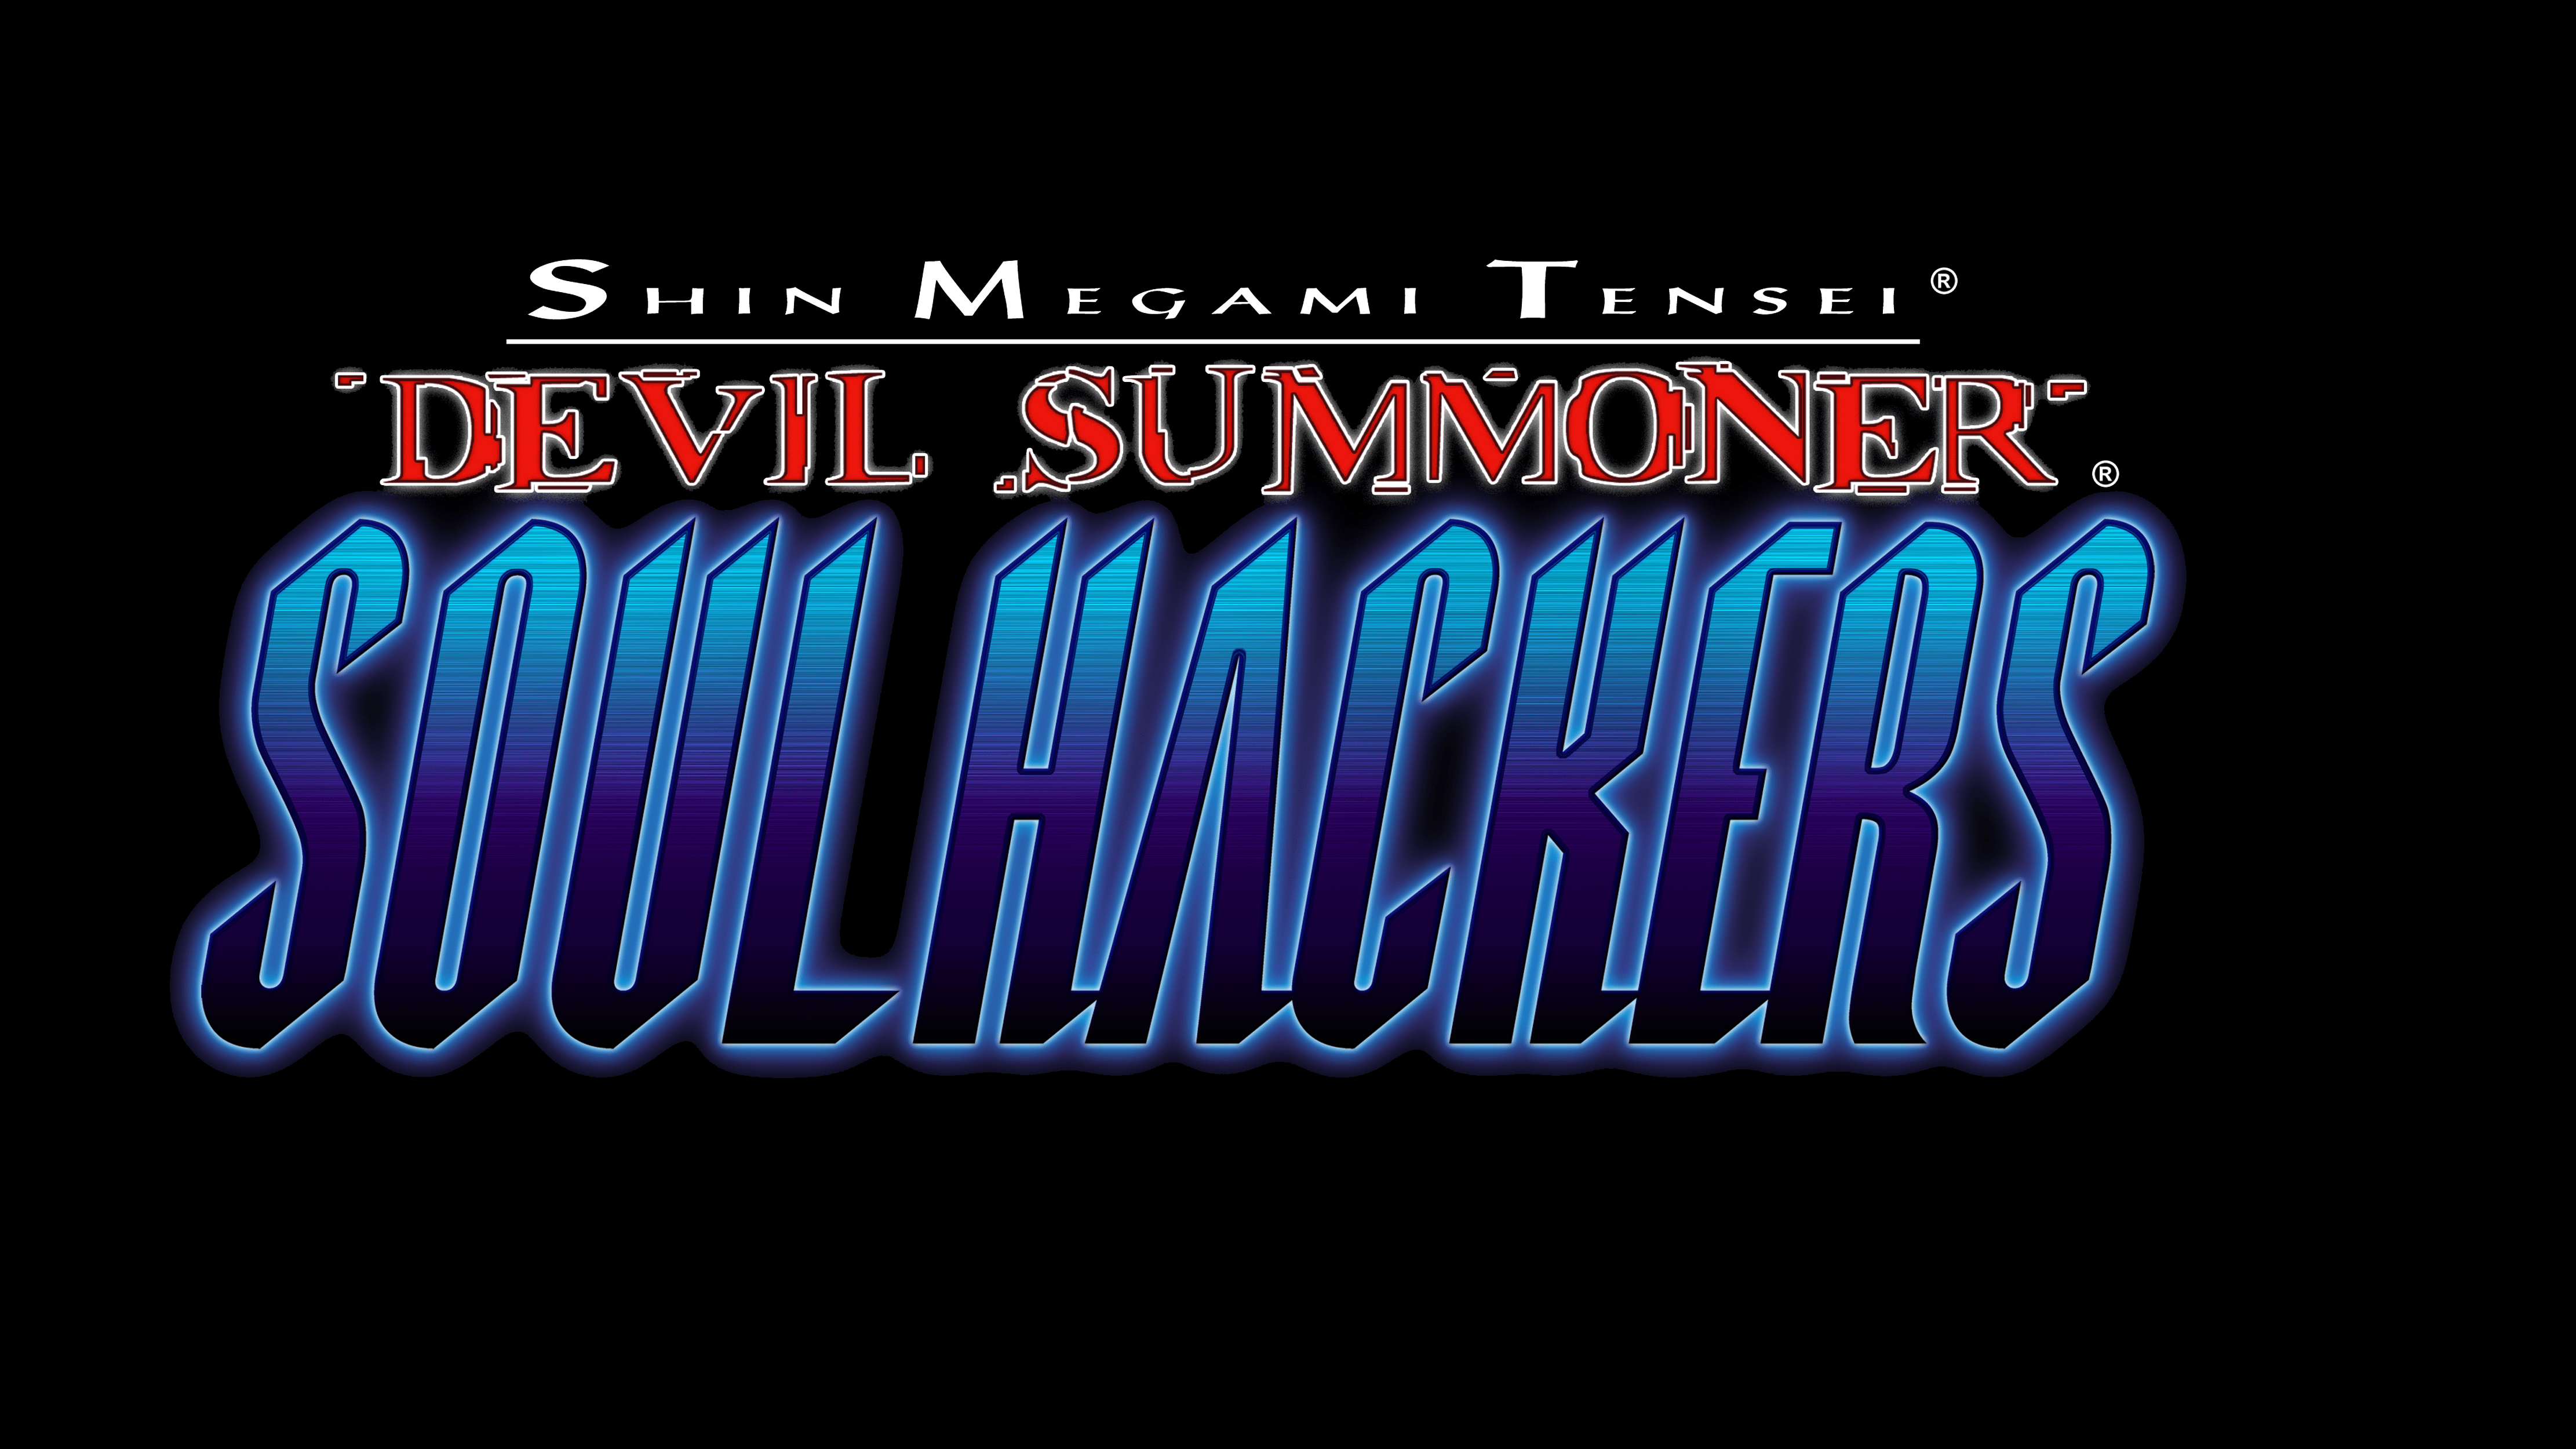 Shin Megami Tensei: Devil Summoner: Soul Hackers Review